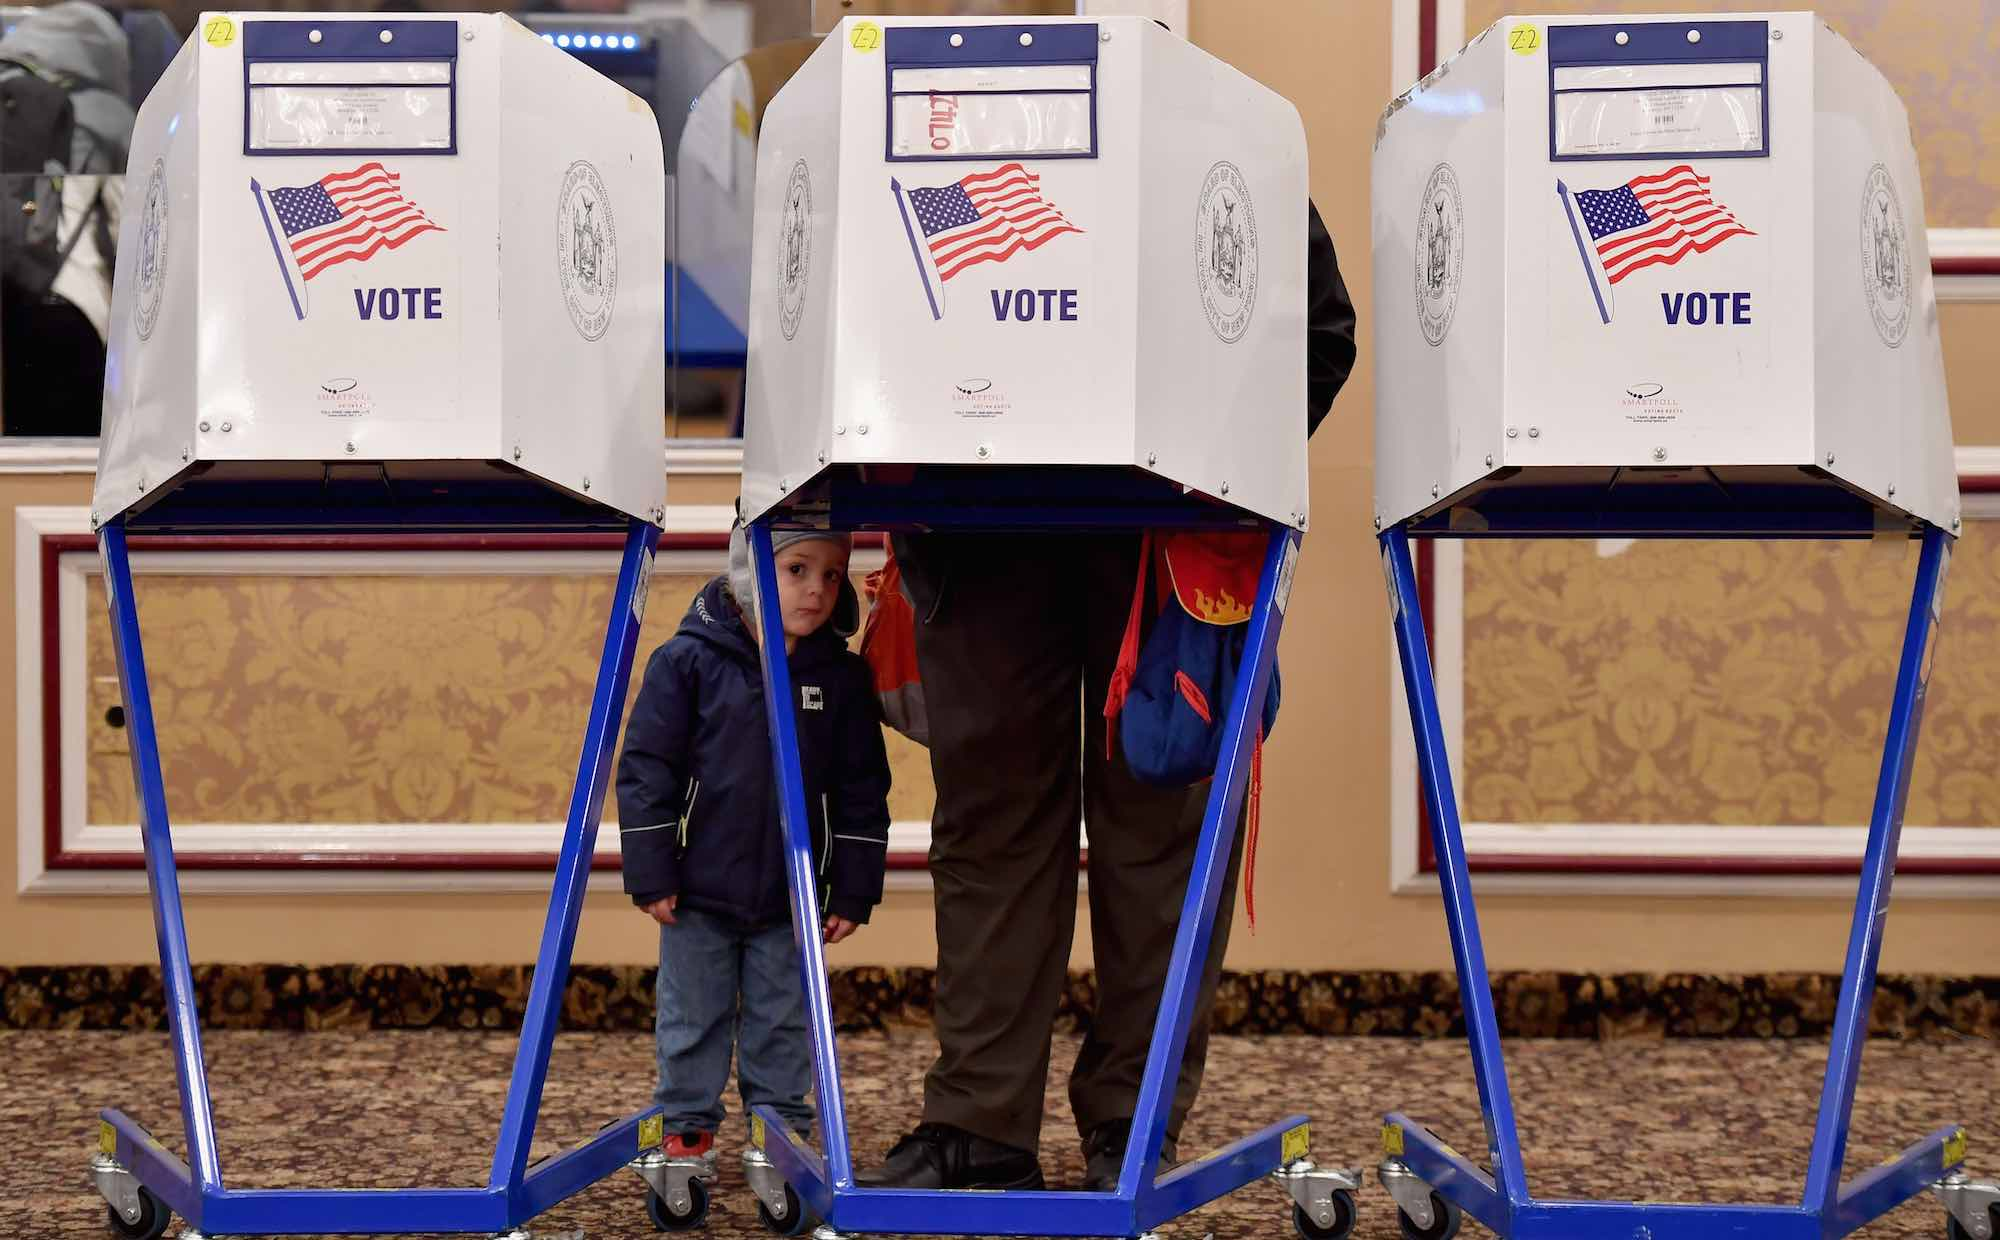 Judgement on the ballot (Photo: Angela Weiss via Getty)